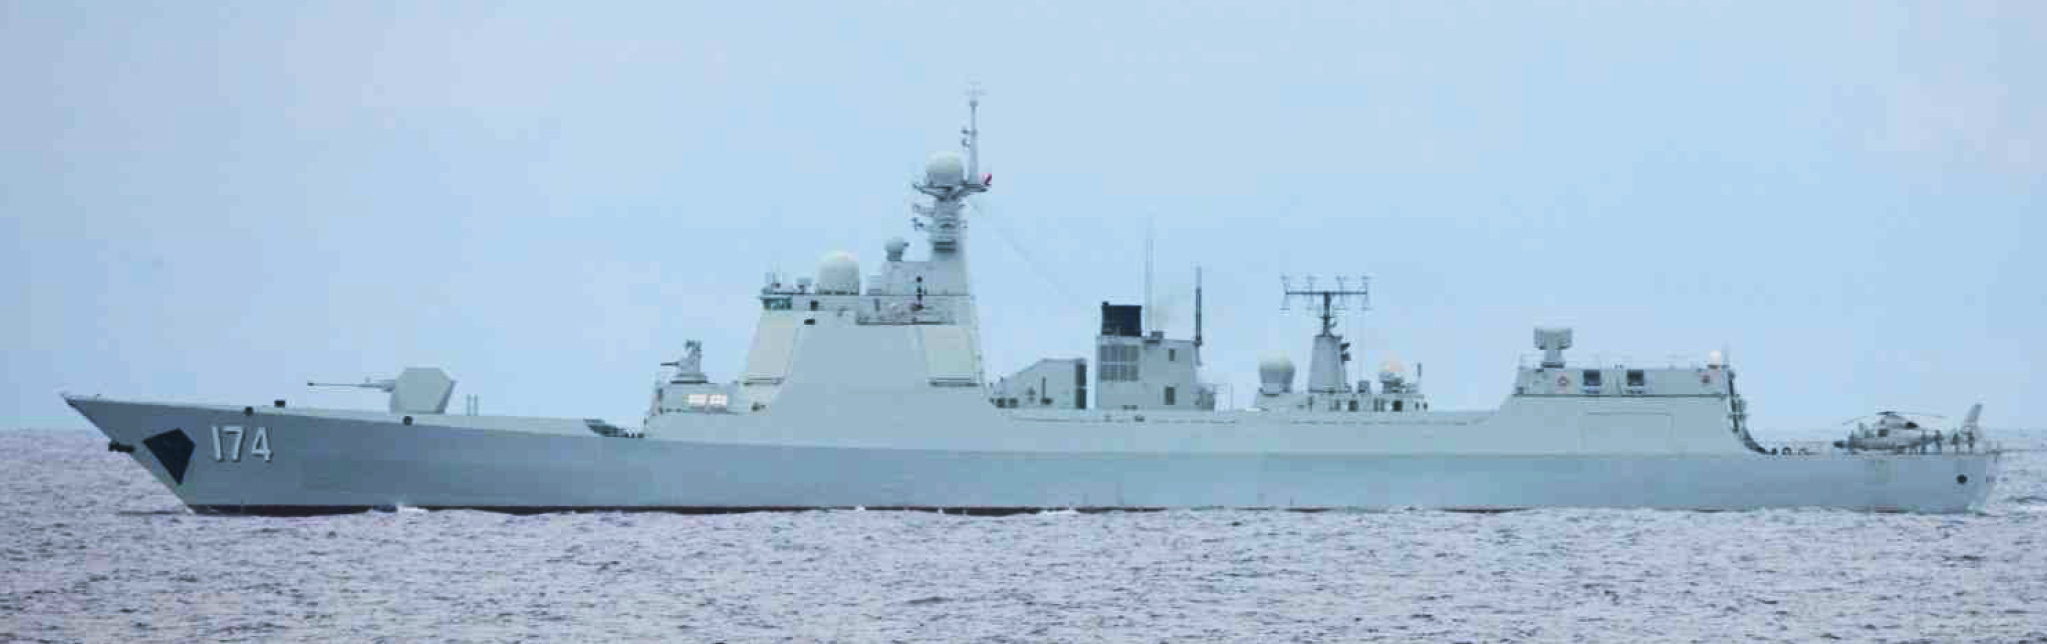 The PLA Navy in the Baltic Sea: A View from Kiel Node on